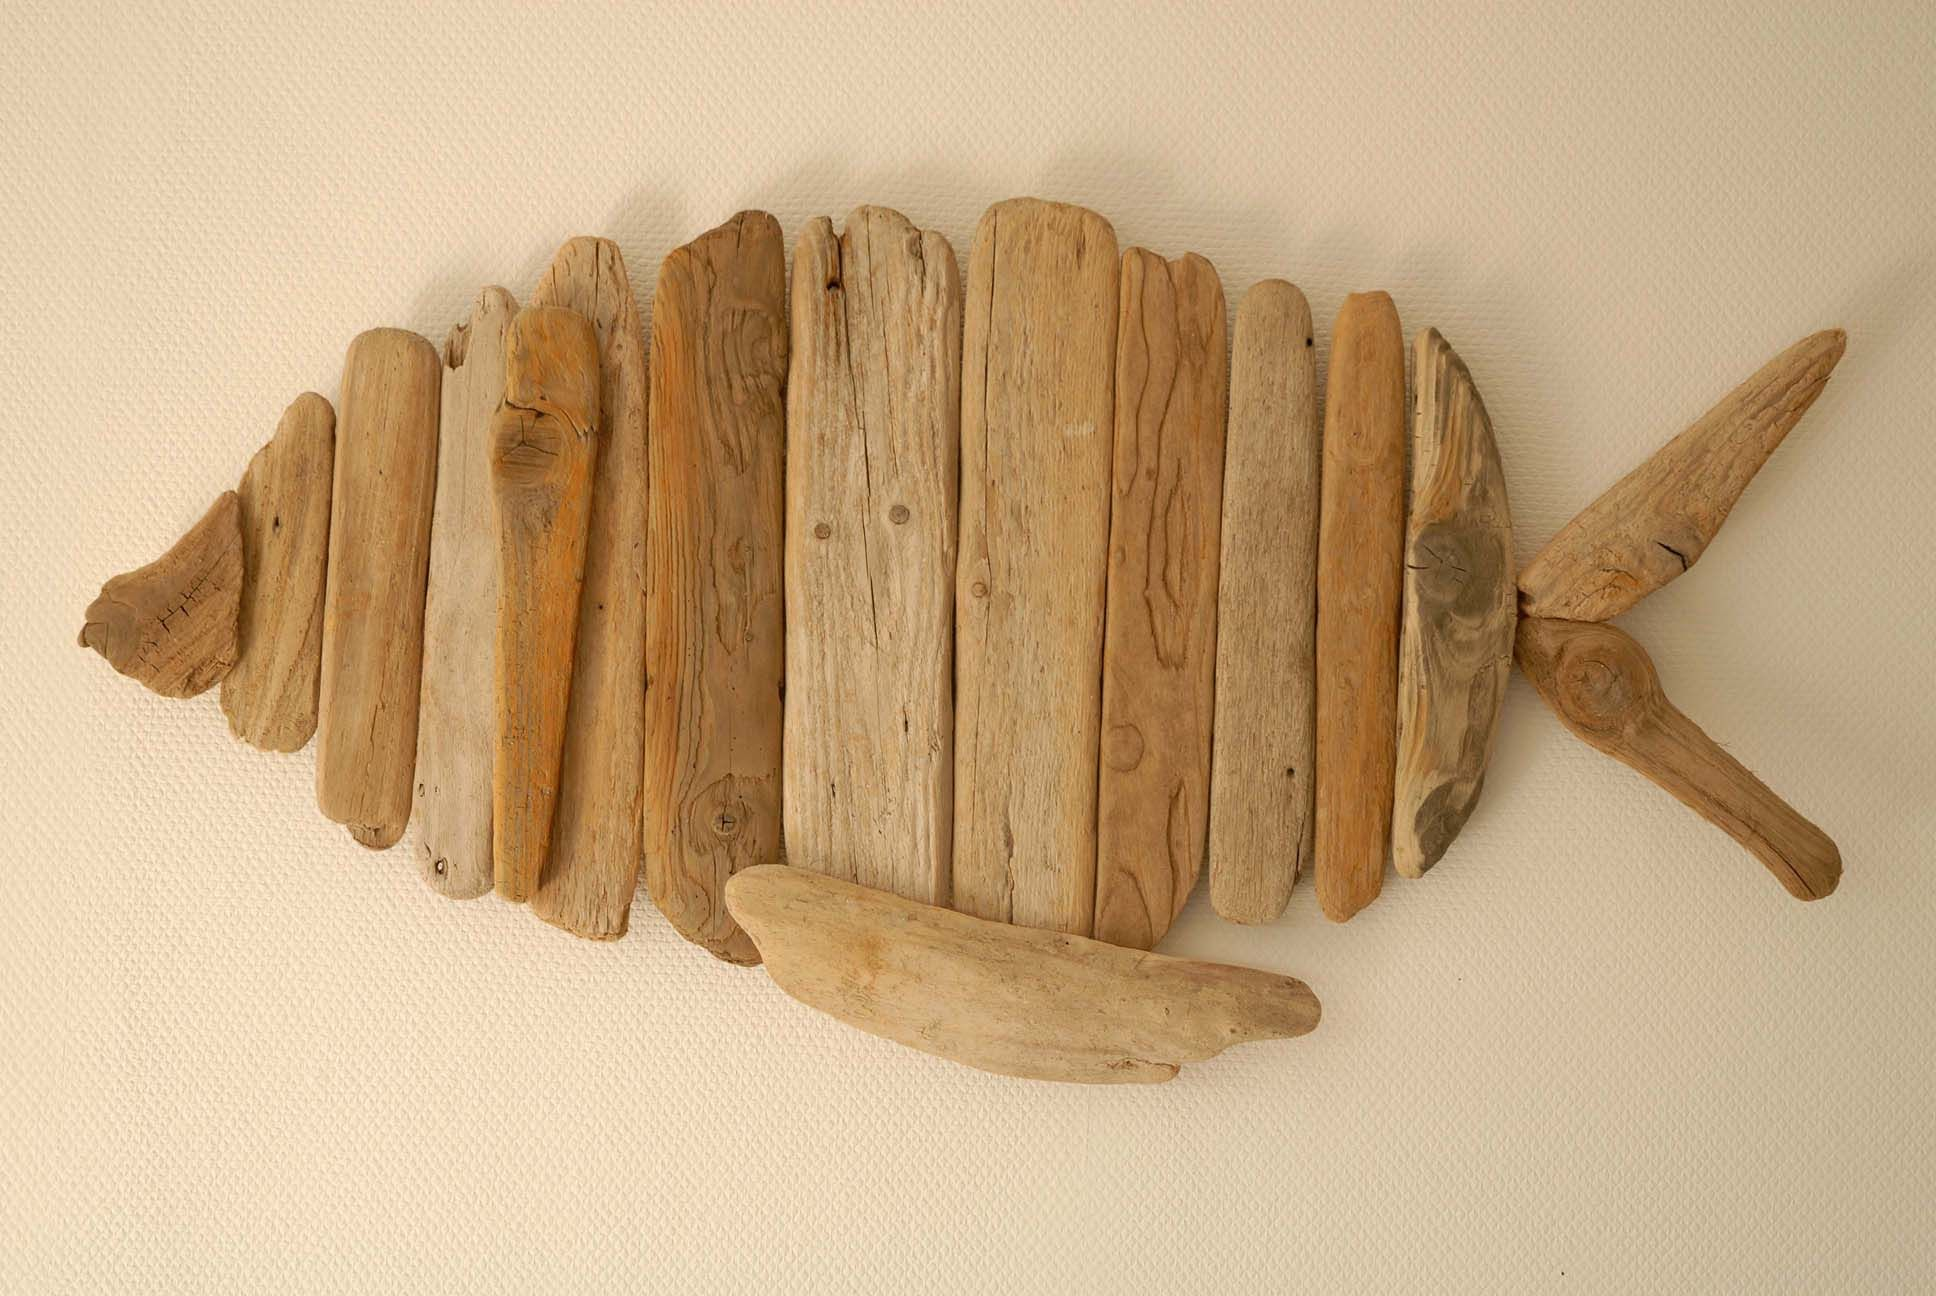 Wanddekoration Treibholz Treibholz Wanddekoration Friendly Fish Driftwood Wall Decoration